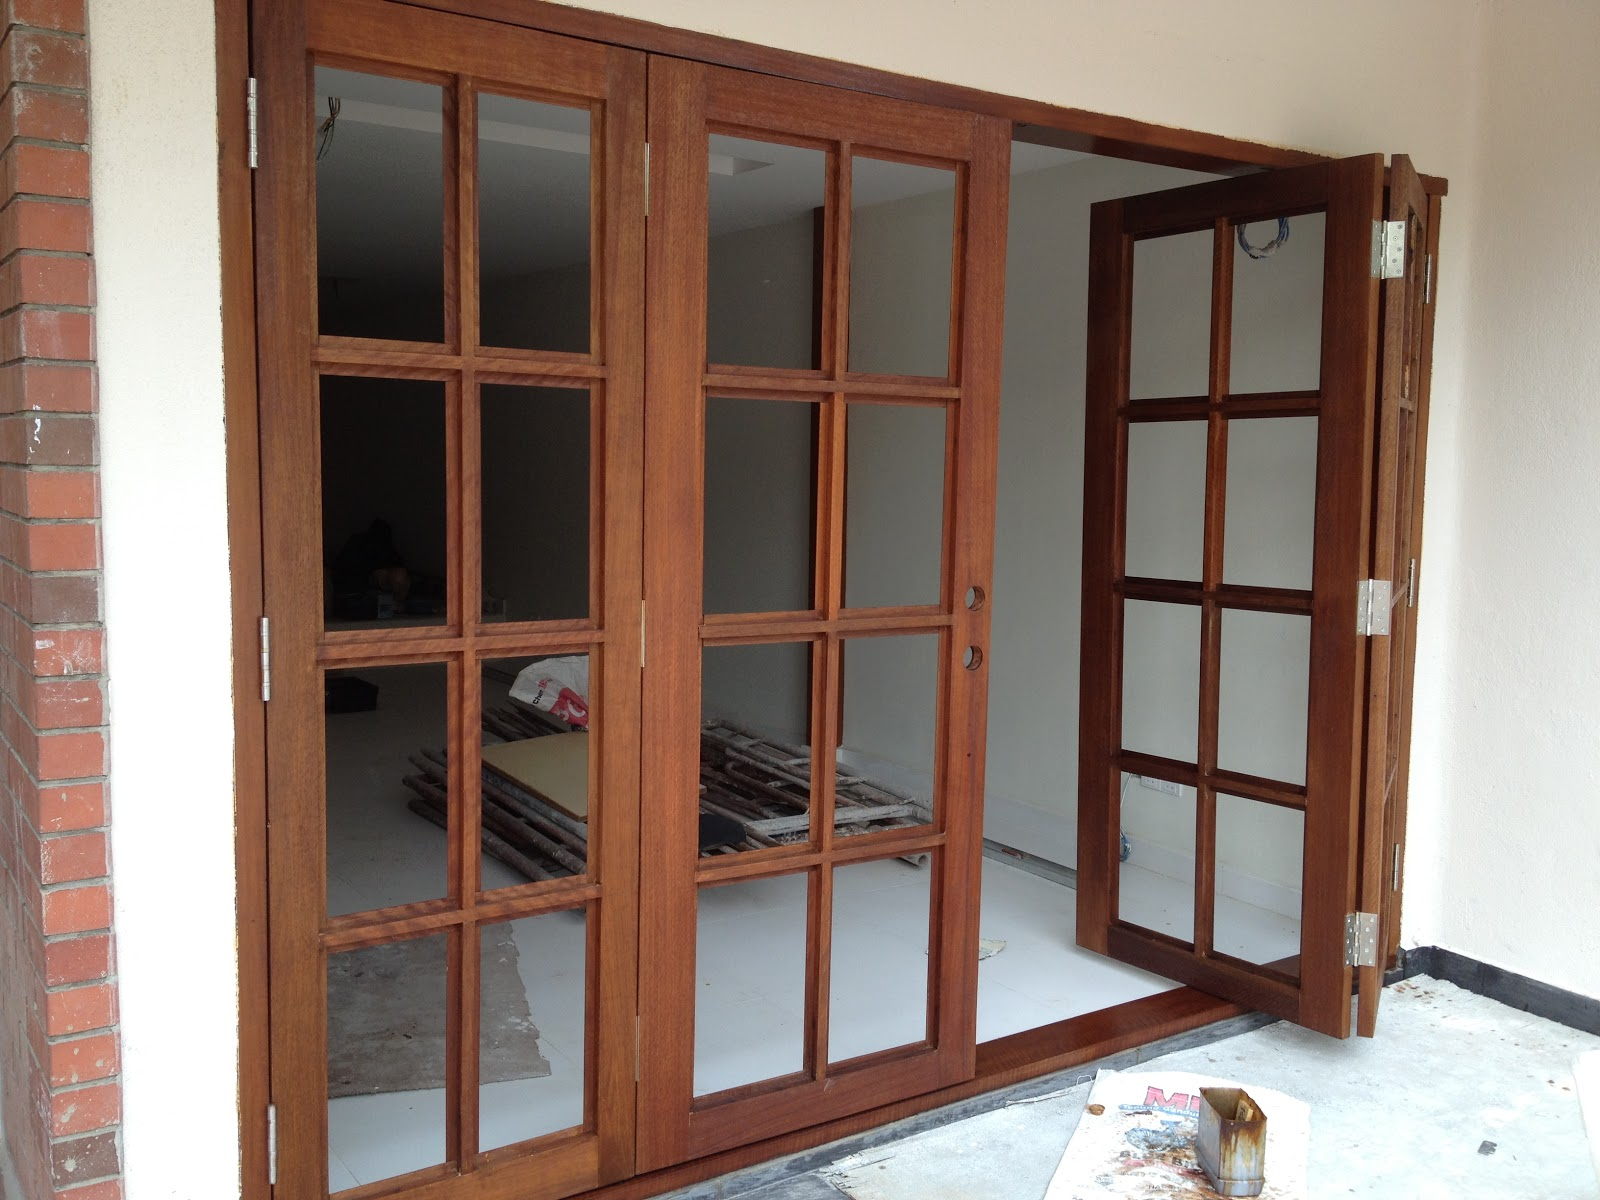 Our renovation adventures four panel doors for 4 panel french doors exterior